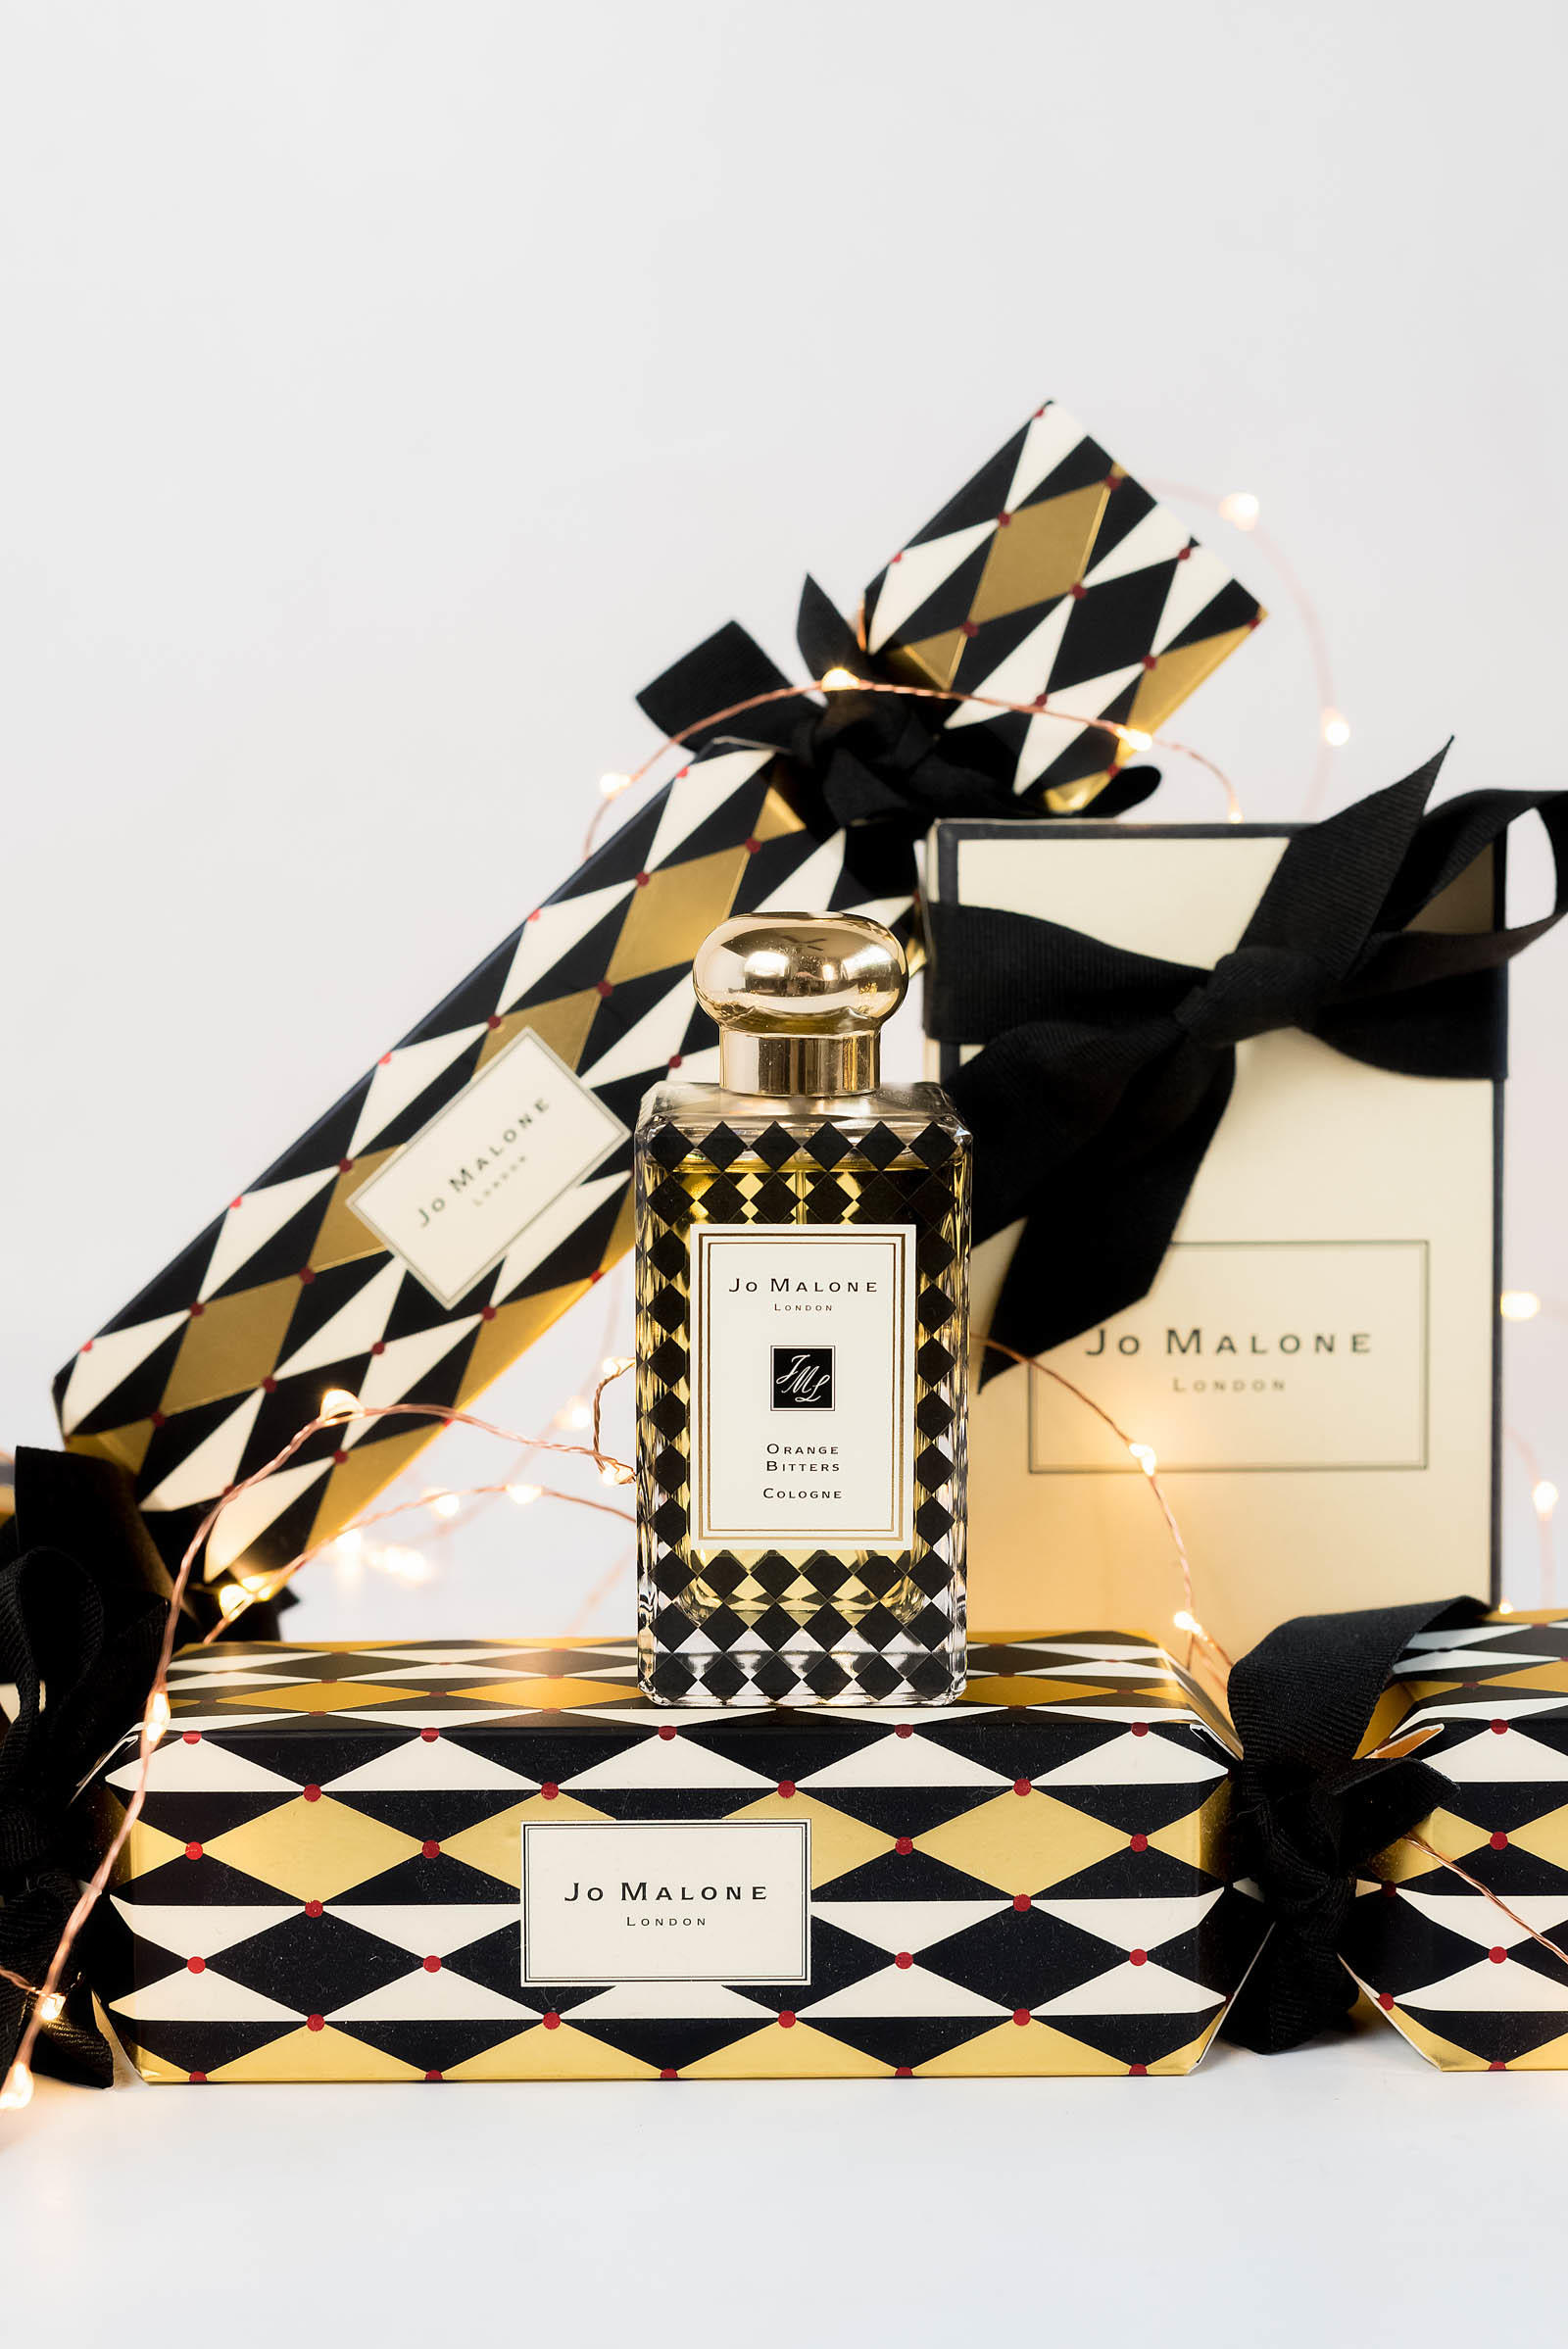 Jo Malone Christmas 2016 Orange Bitters Cologne